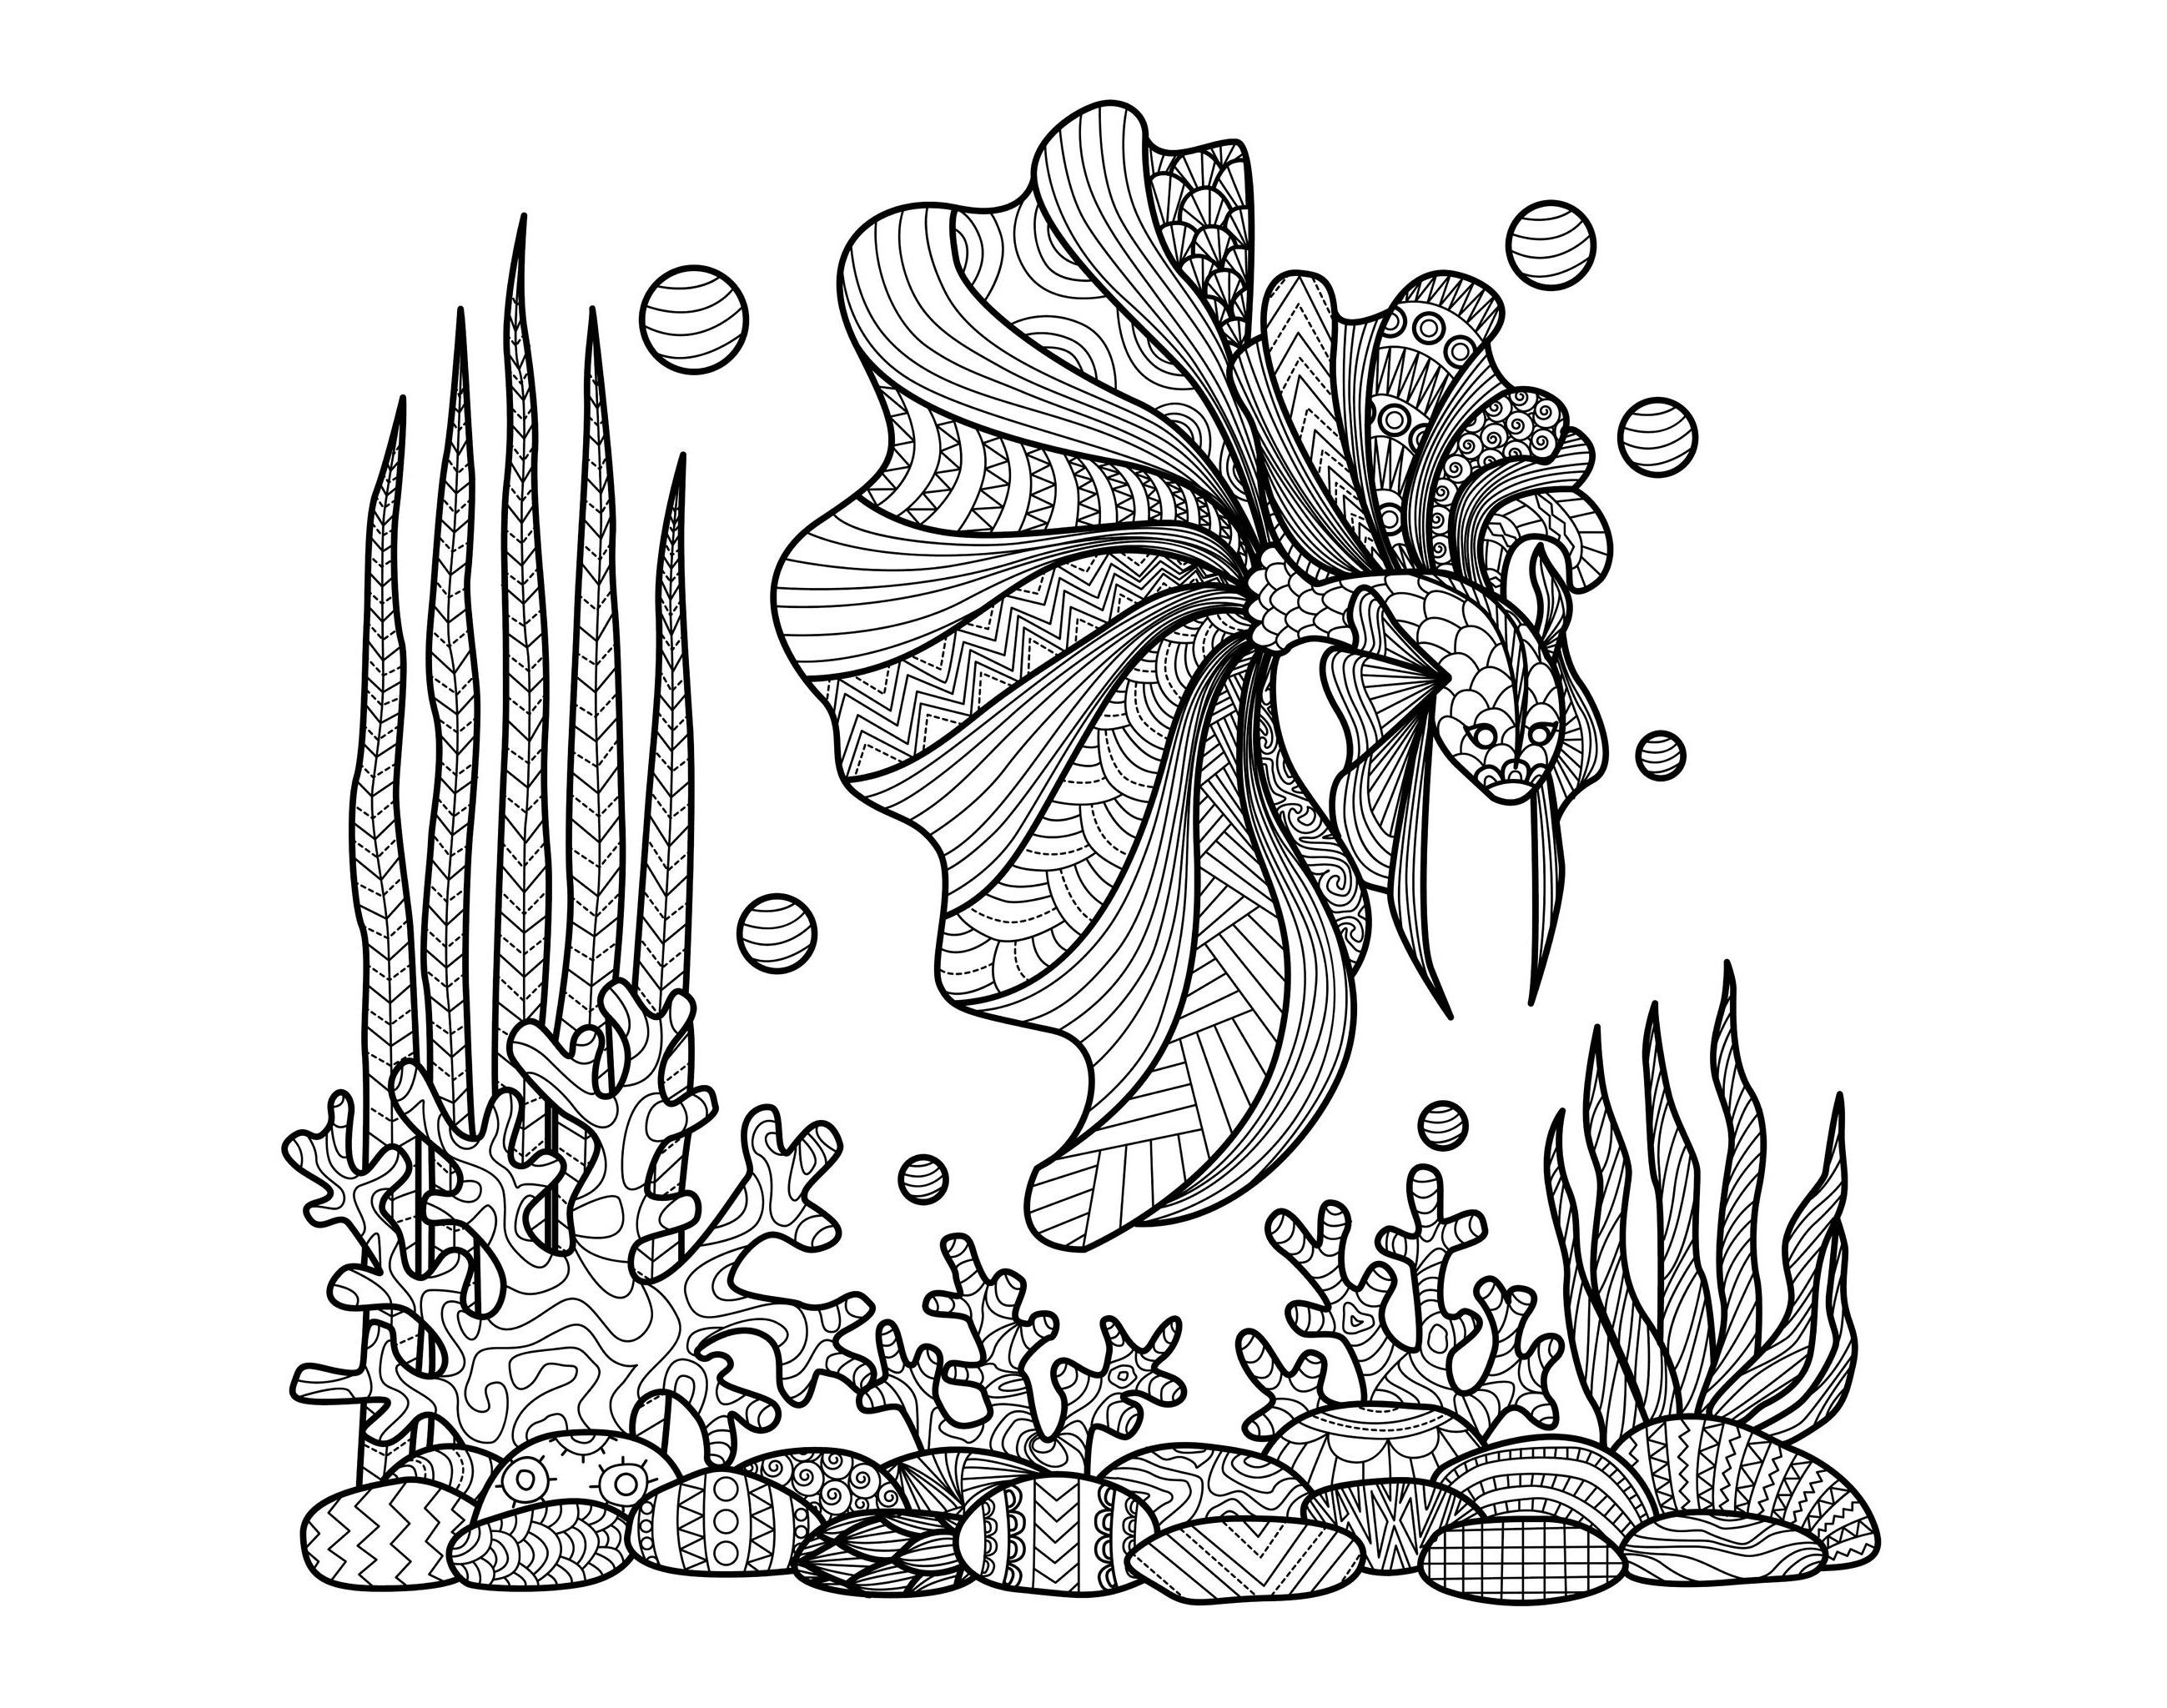 Zentangle Fish On Corals Zentangle Coloring Pages For Adults Just Color Page 2 Con Imagenes Dibujos Colores Cyndi